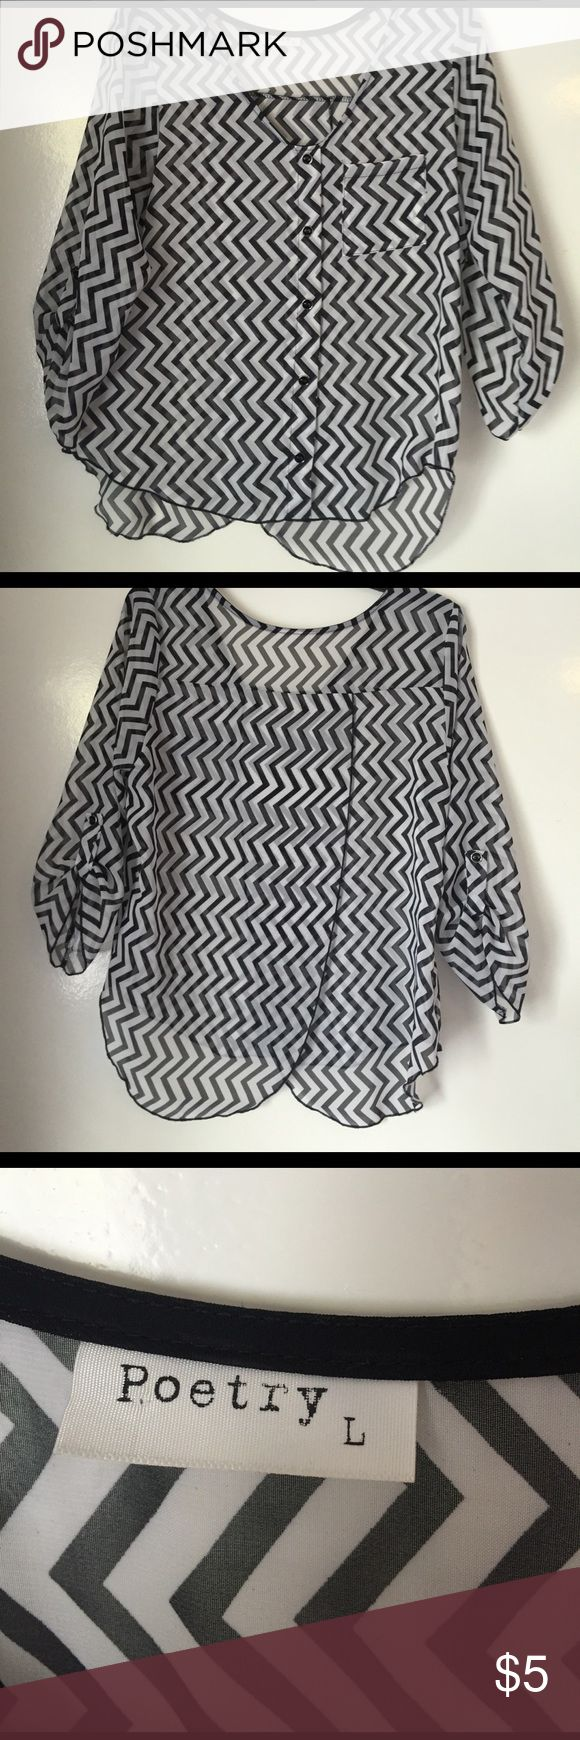 Black and white chevron shirt Super cute black and white chevron shirt that opens in the back. Worn twice, open to offers! Poetry Tops Button Down Shirts